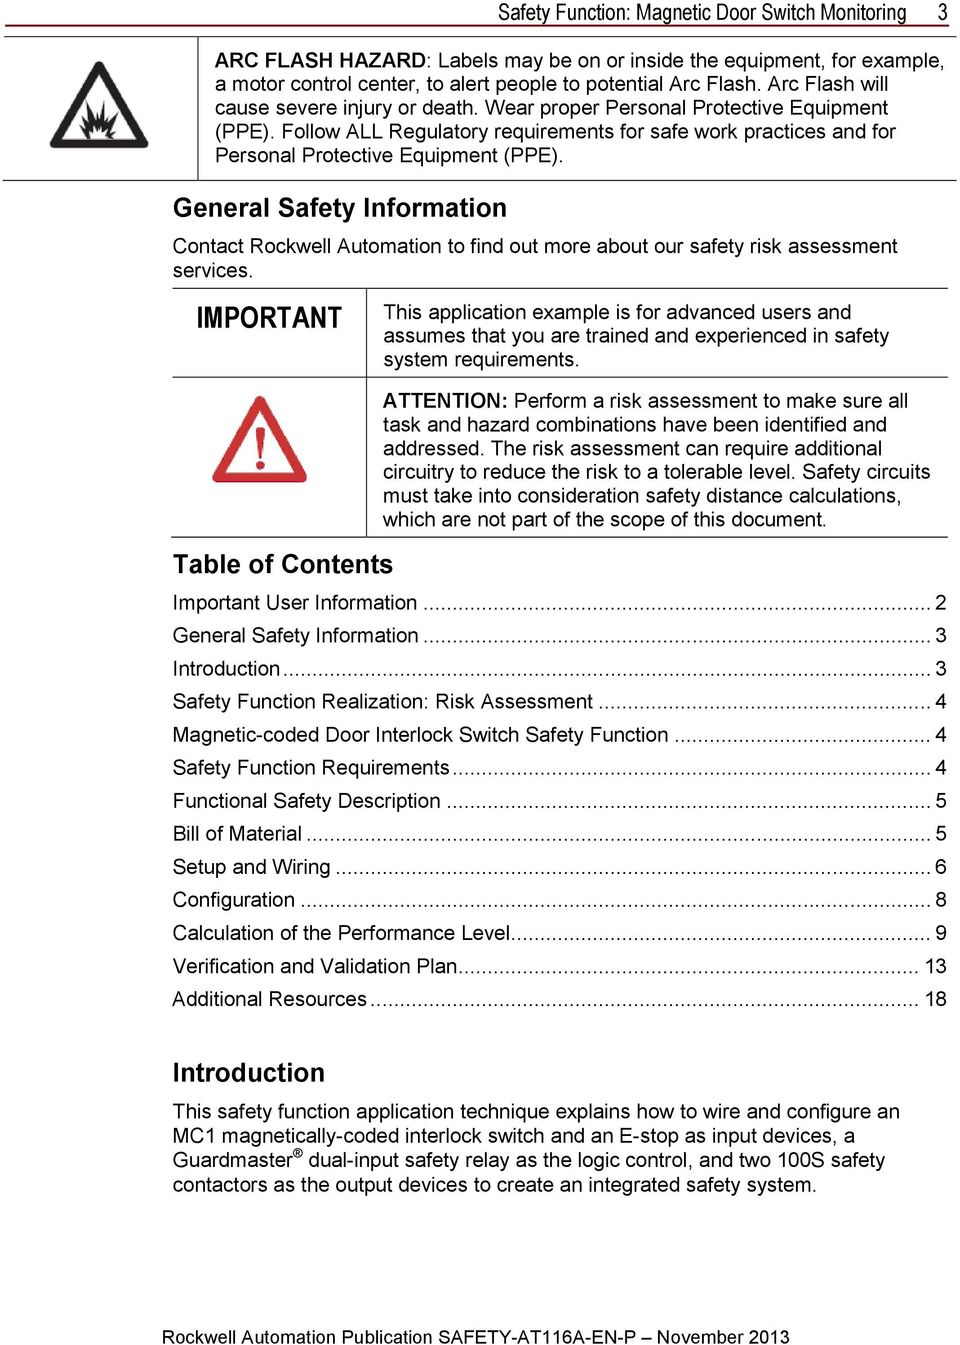 Application Technique Safety Function Magnetic Door Switch Estop Relay Wiring Diagram General Information Contact Rockwell Automation To Find Out More About Our Risk Assessment Services